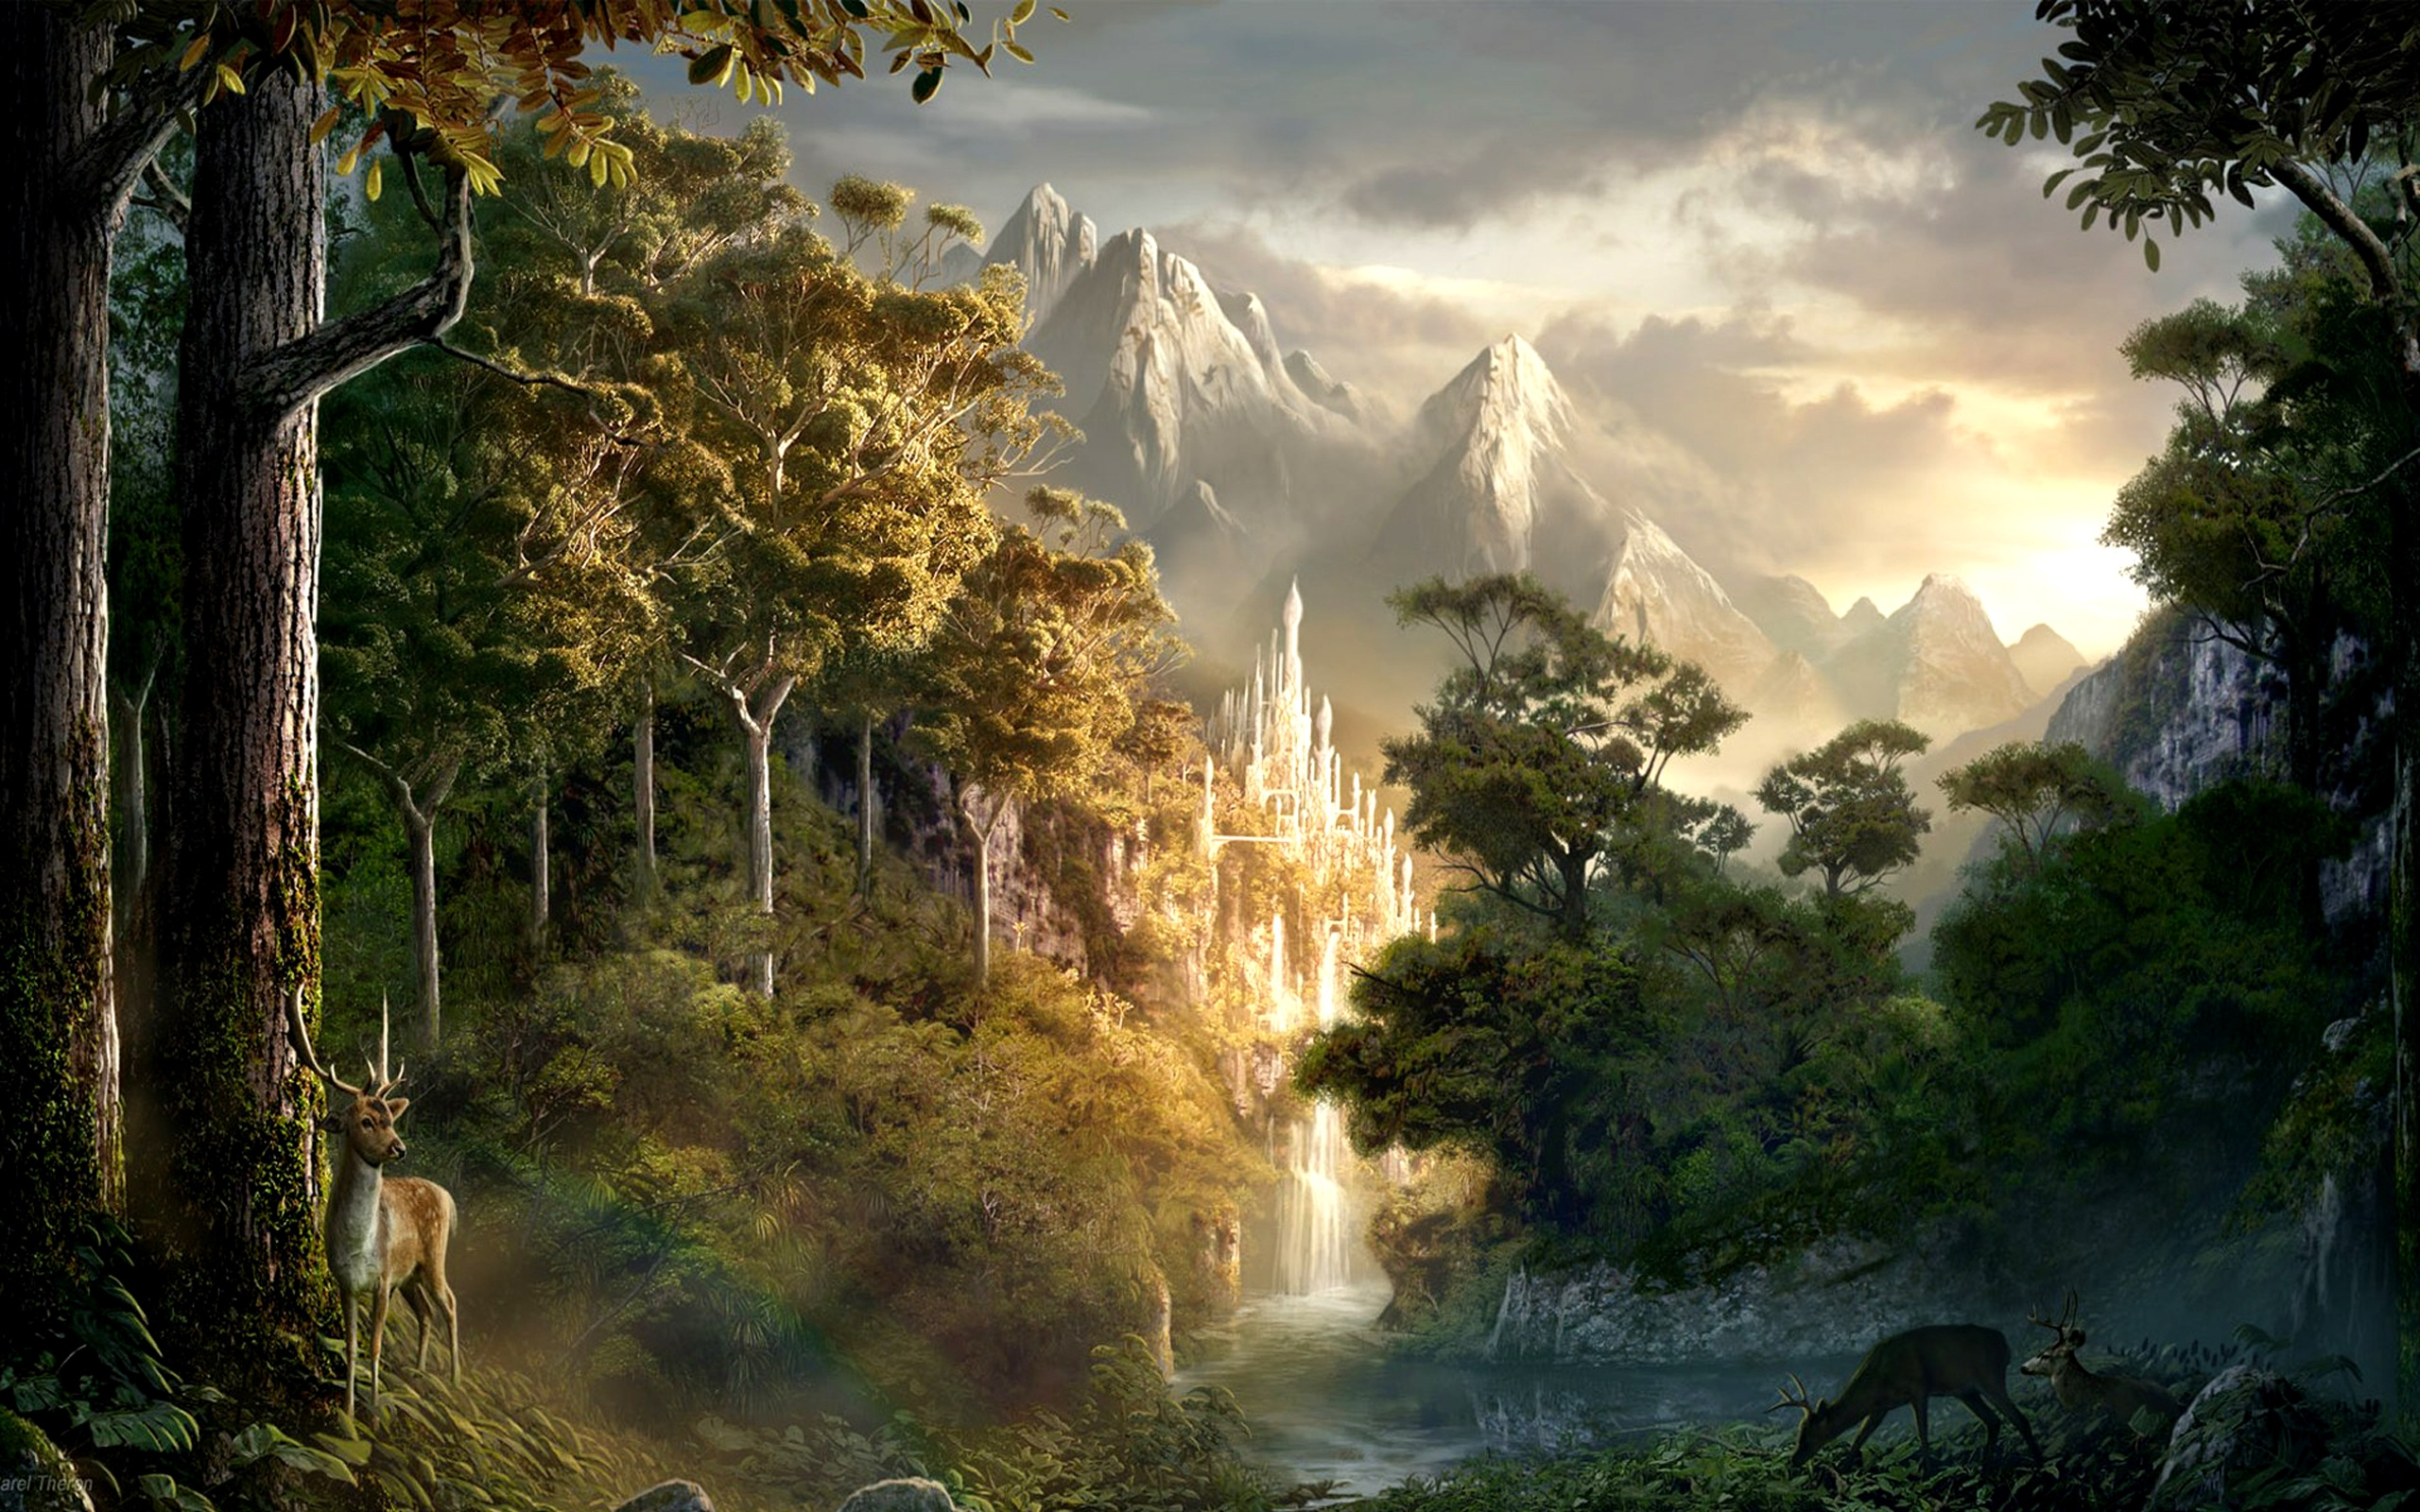 The Lord Of The Rings Wallpapers High Quality | Download Free